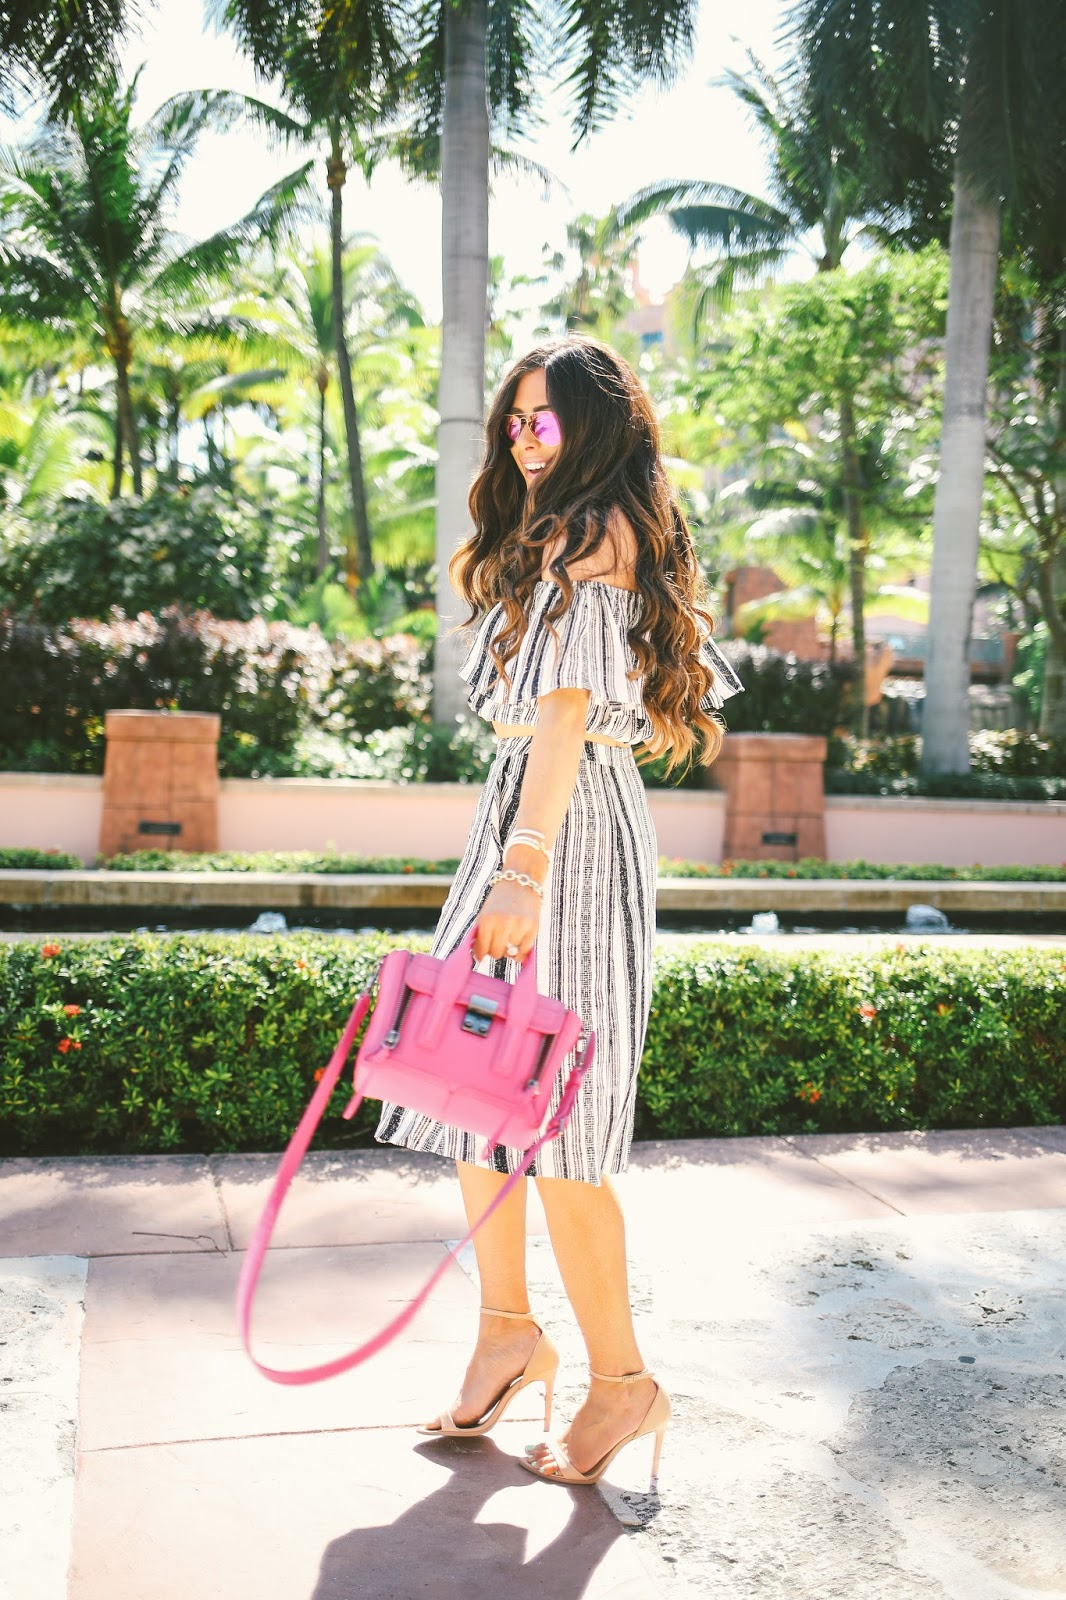 pink ray ban aviators, fuchsia ray ban aviators, ASTR two piece set, striped skirt and crop top outfit, pink phillip lim mini, fushica phillip lim mini, atlantis bahamas, emily gemma blog, the sweetest thing, phillip lim pashli mini, brunette balayage, bellami balayage extensions